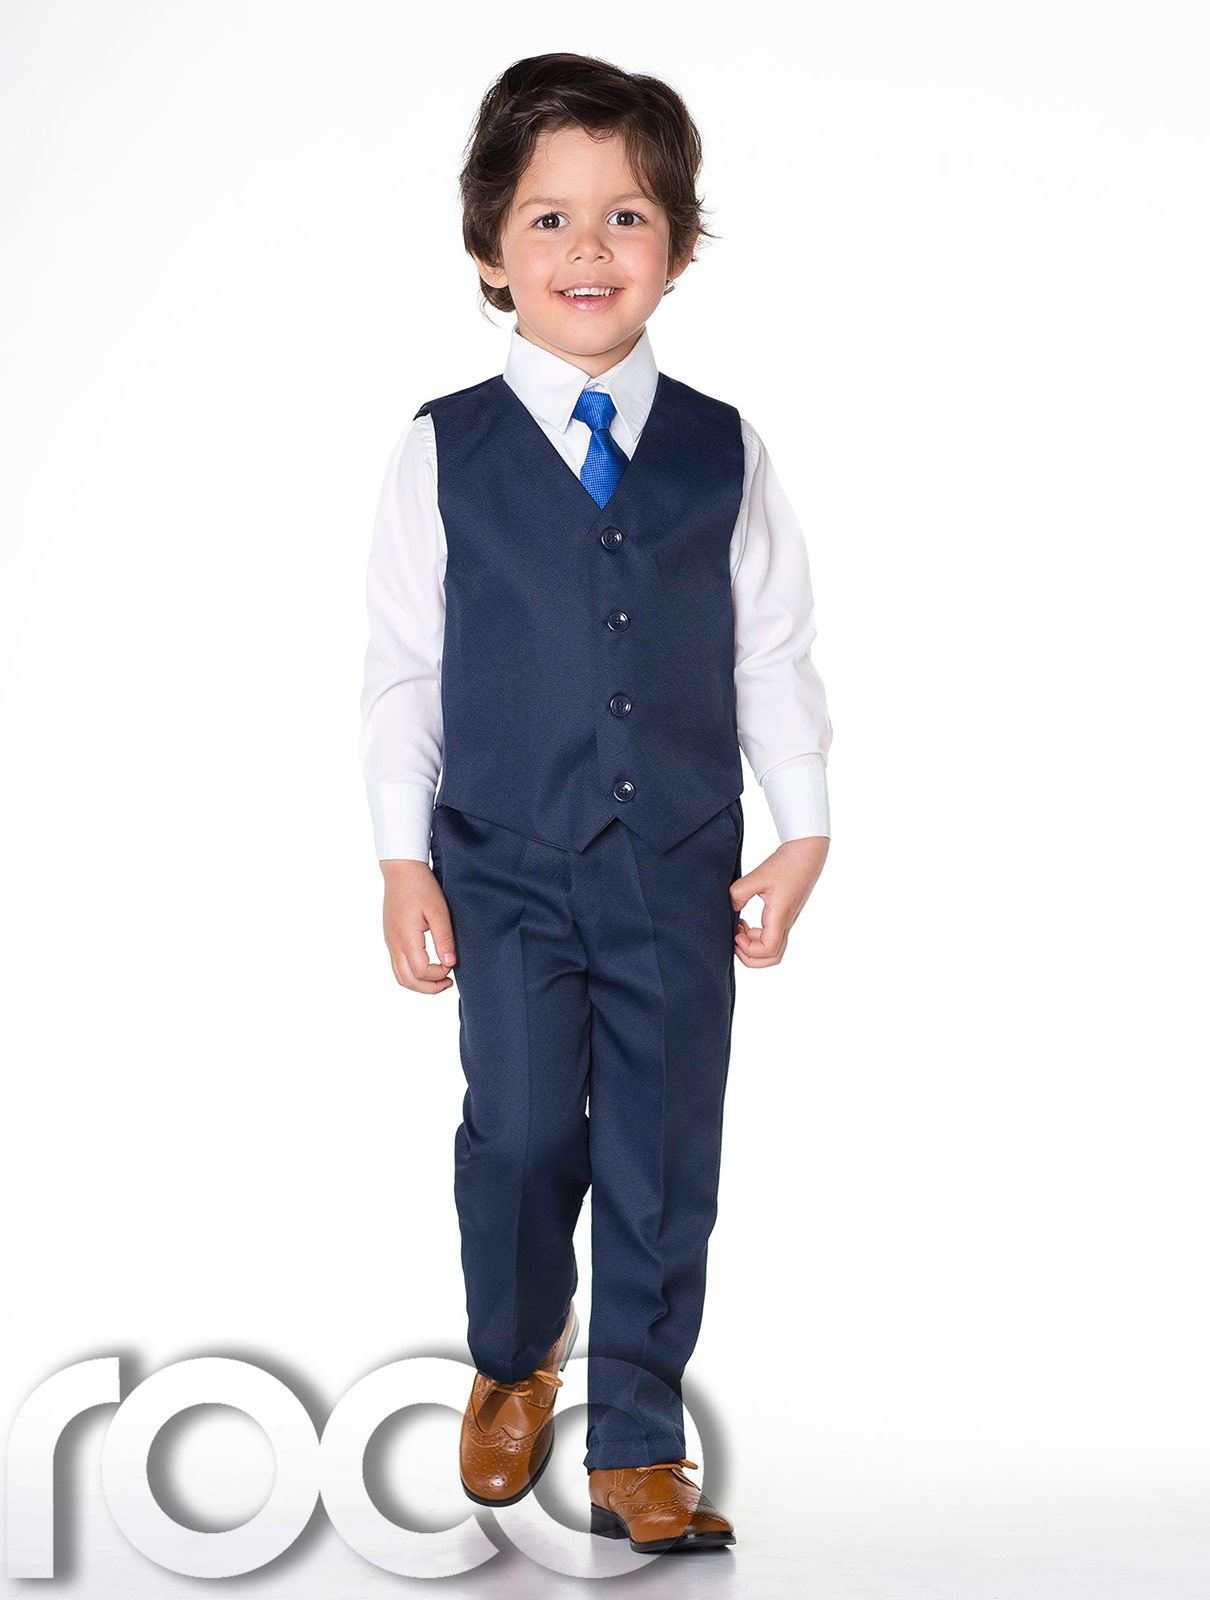 Page-Boy-Suits-Boys-Waistcoat-Suit-Boys-suits-Navy-Suit-Grey-Suit-Blue-Suit thumbnail 7